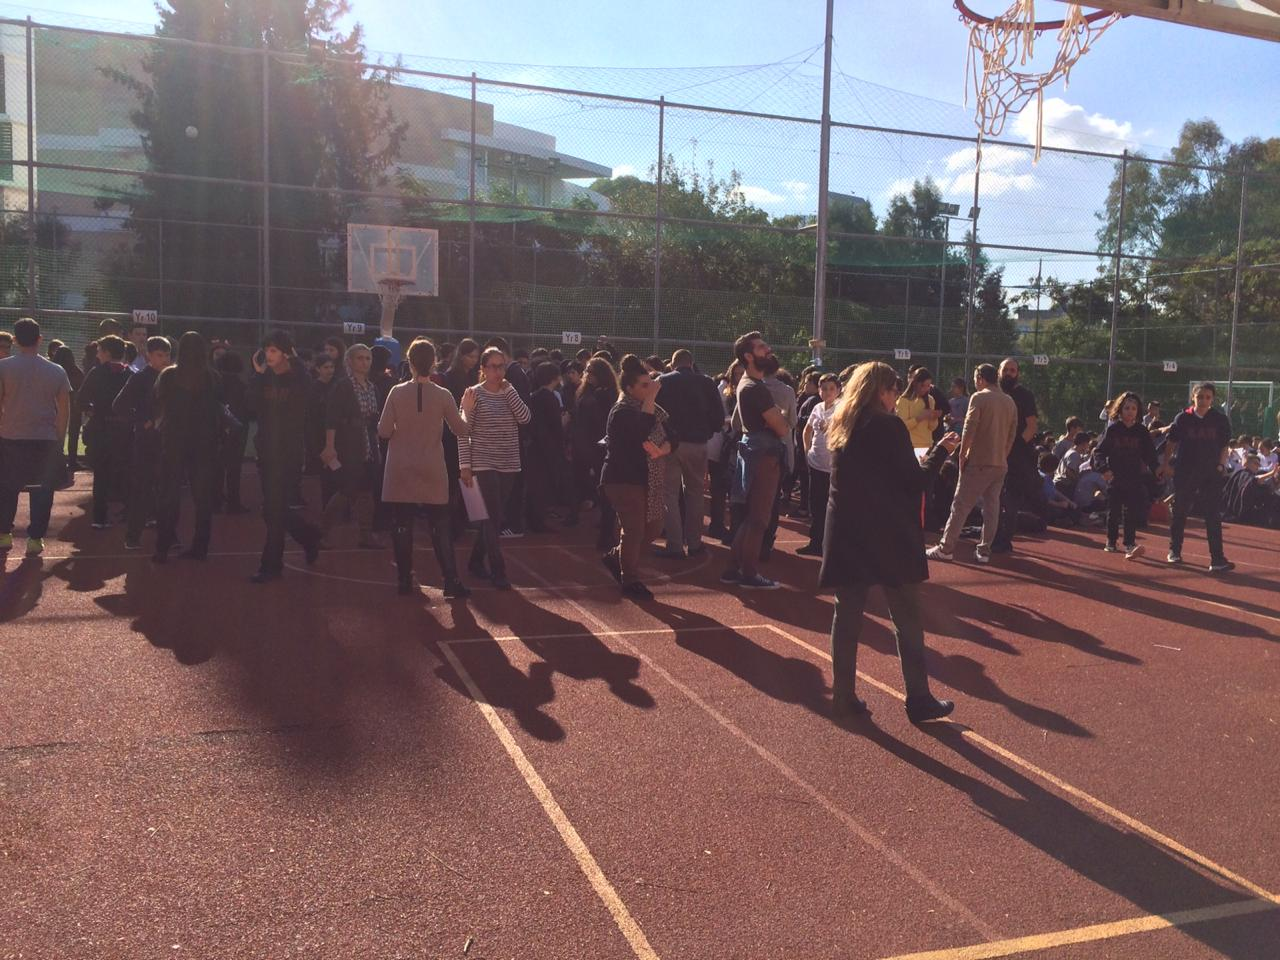 Bomb scare at American academy school in Nicosia, Cyprus. School evacuated 23